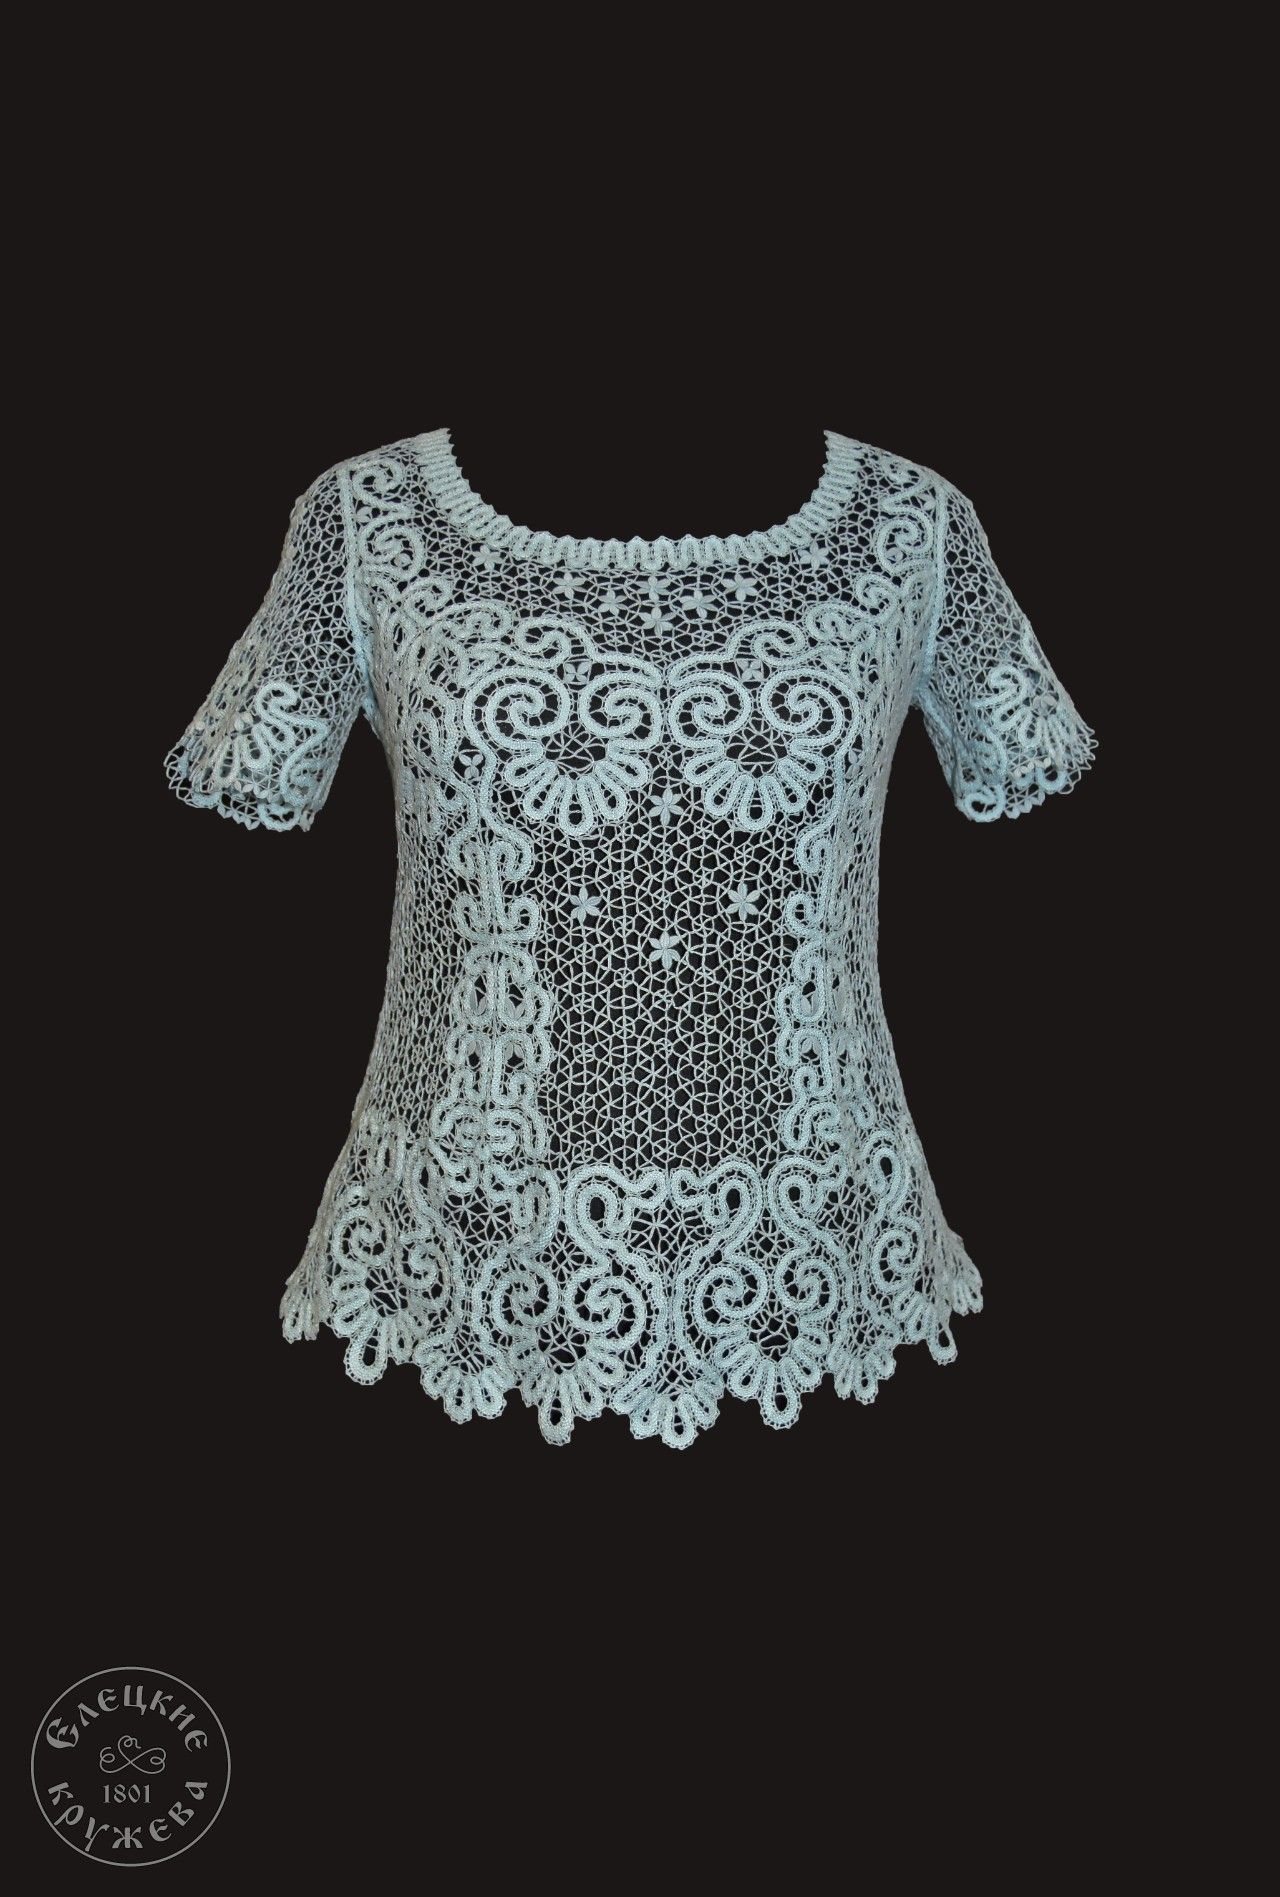 Yelets lace / Women's lace blouse С1046